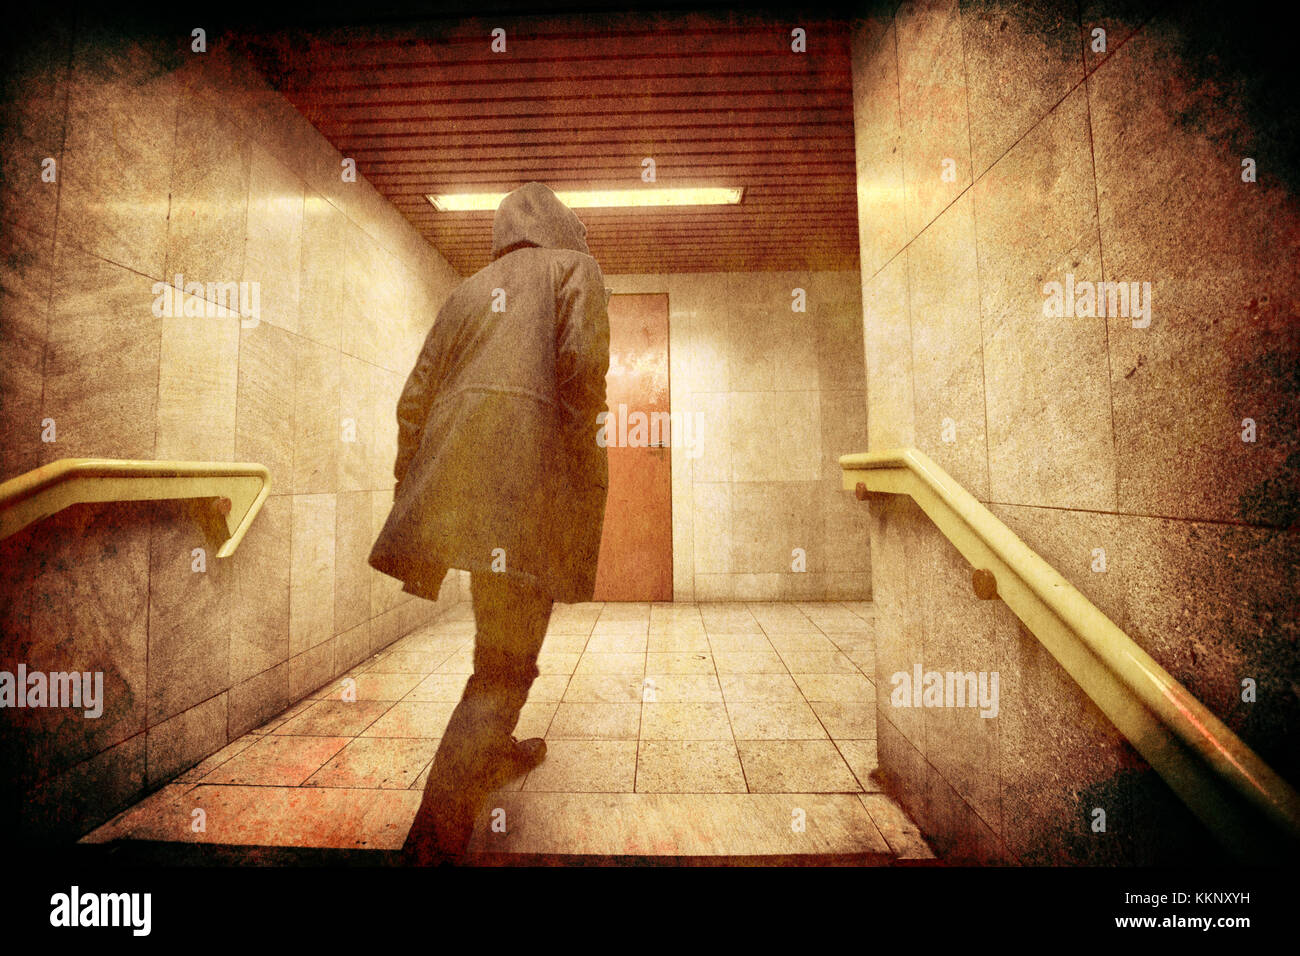 Hooded man comes up from the stairs - Stock Image